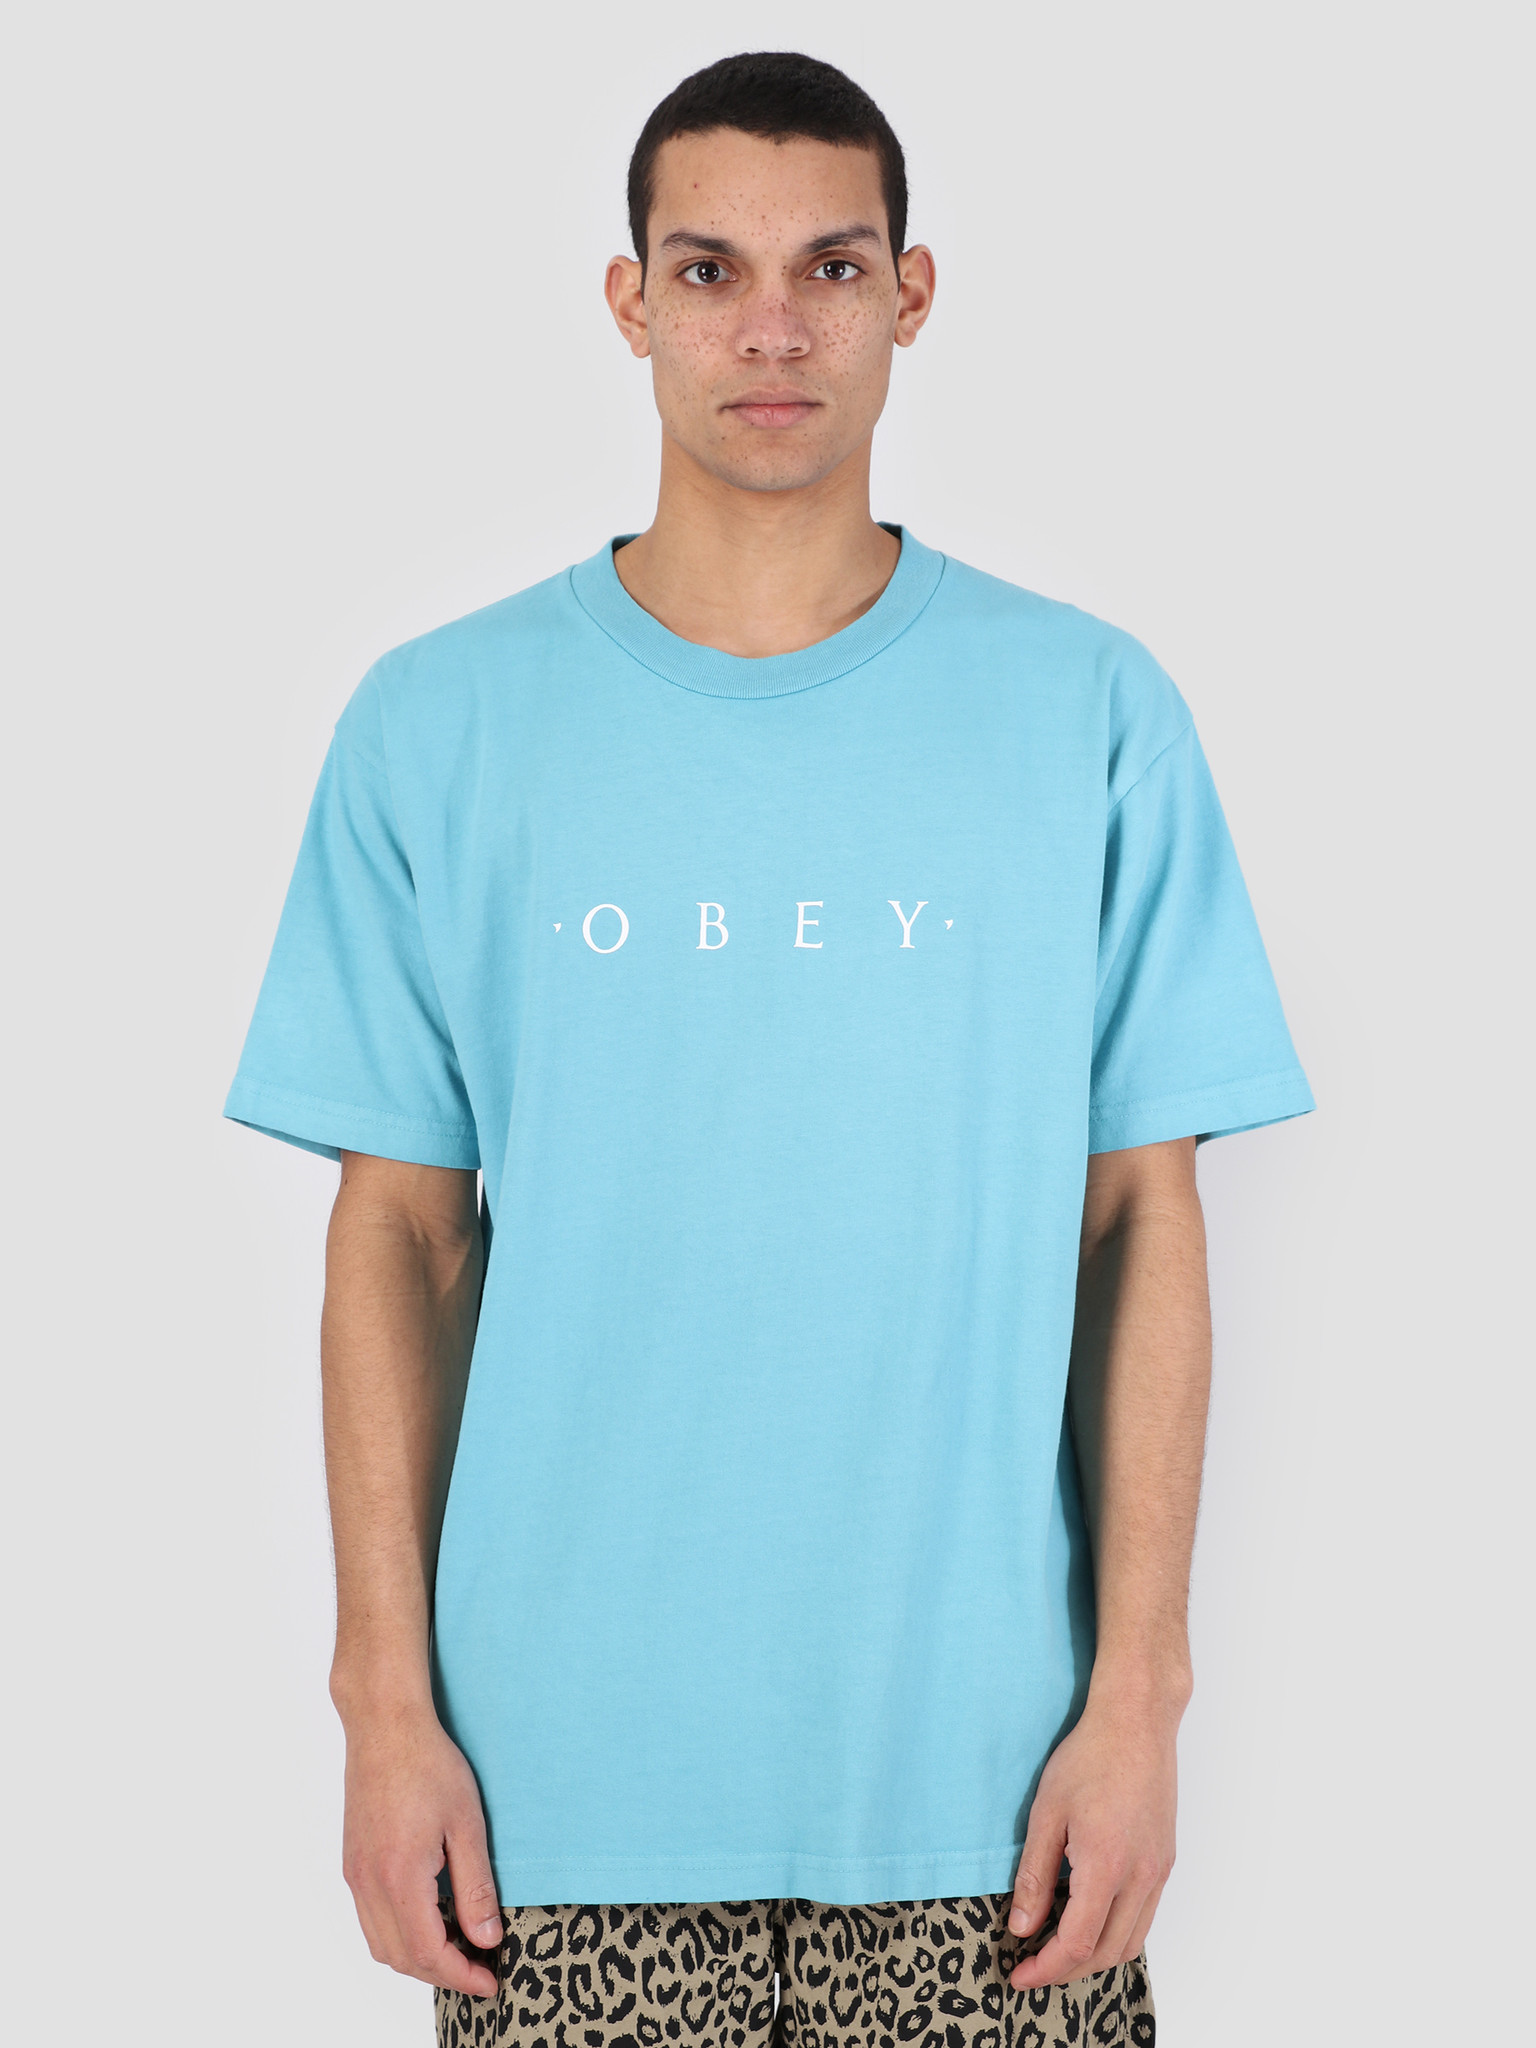 Obey Obey Novel Obey Classic Box T-Shirts POL 166911578